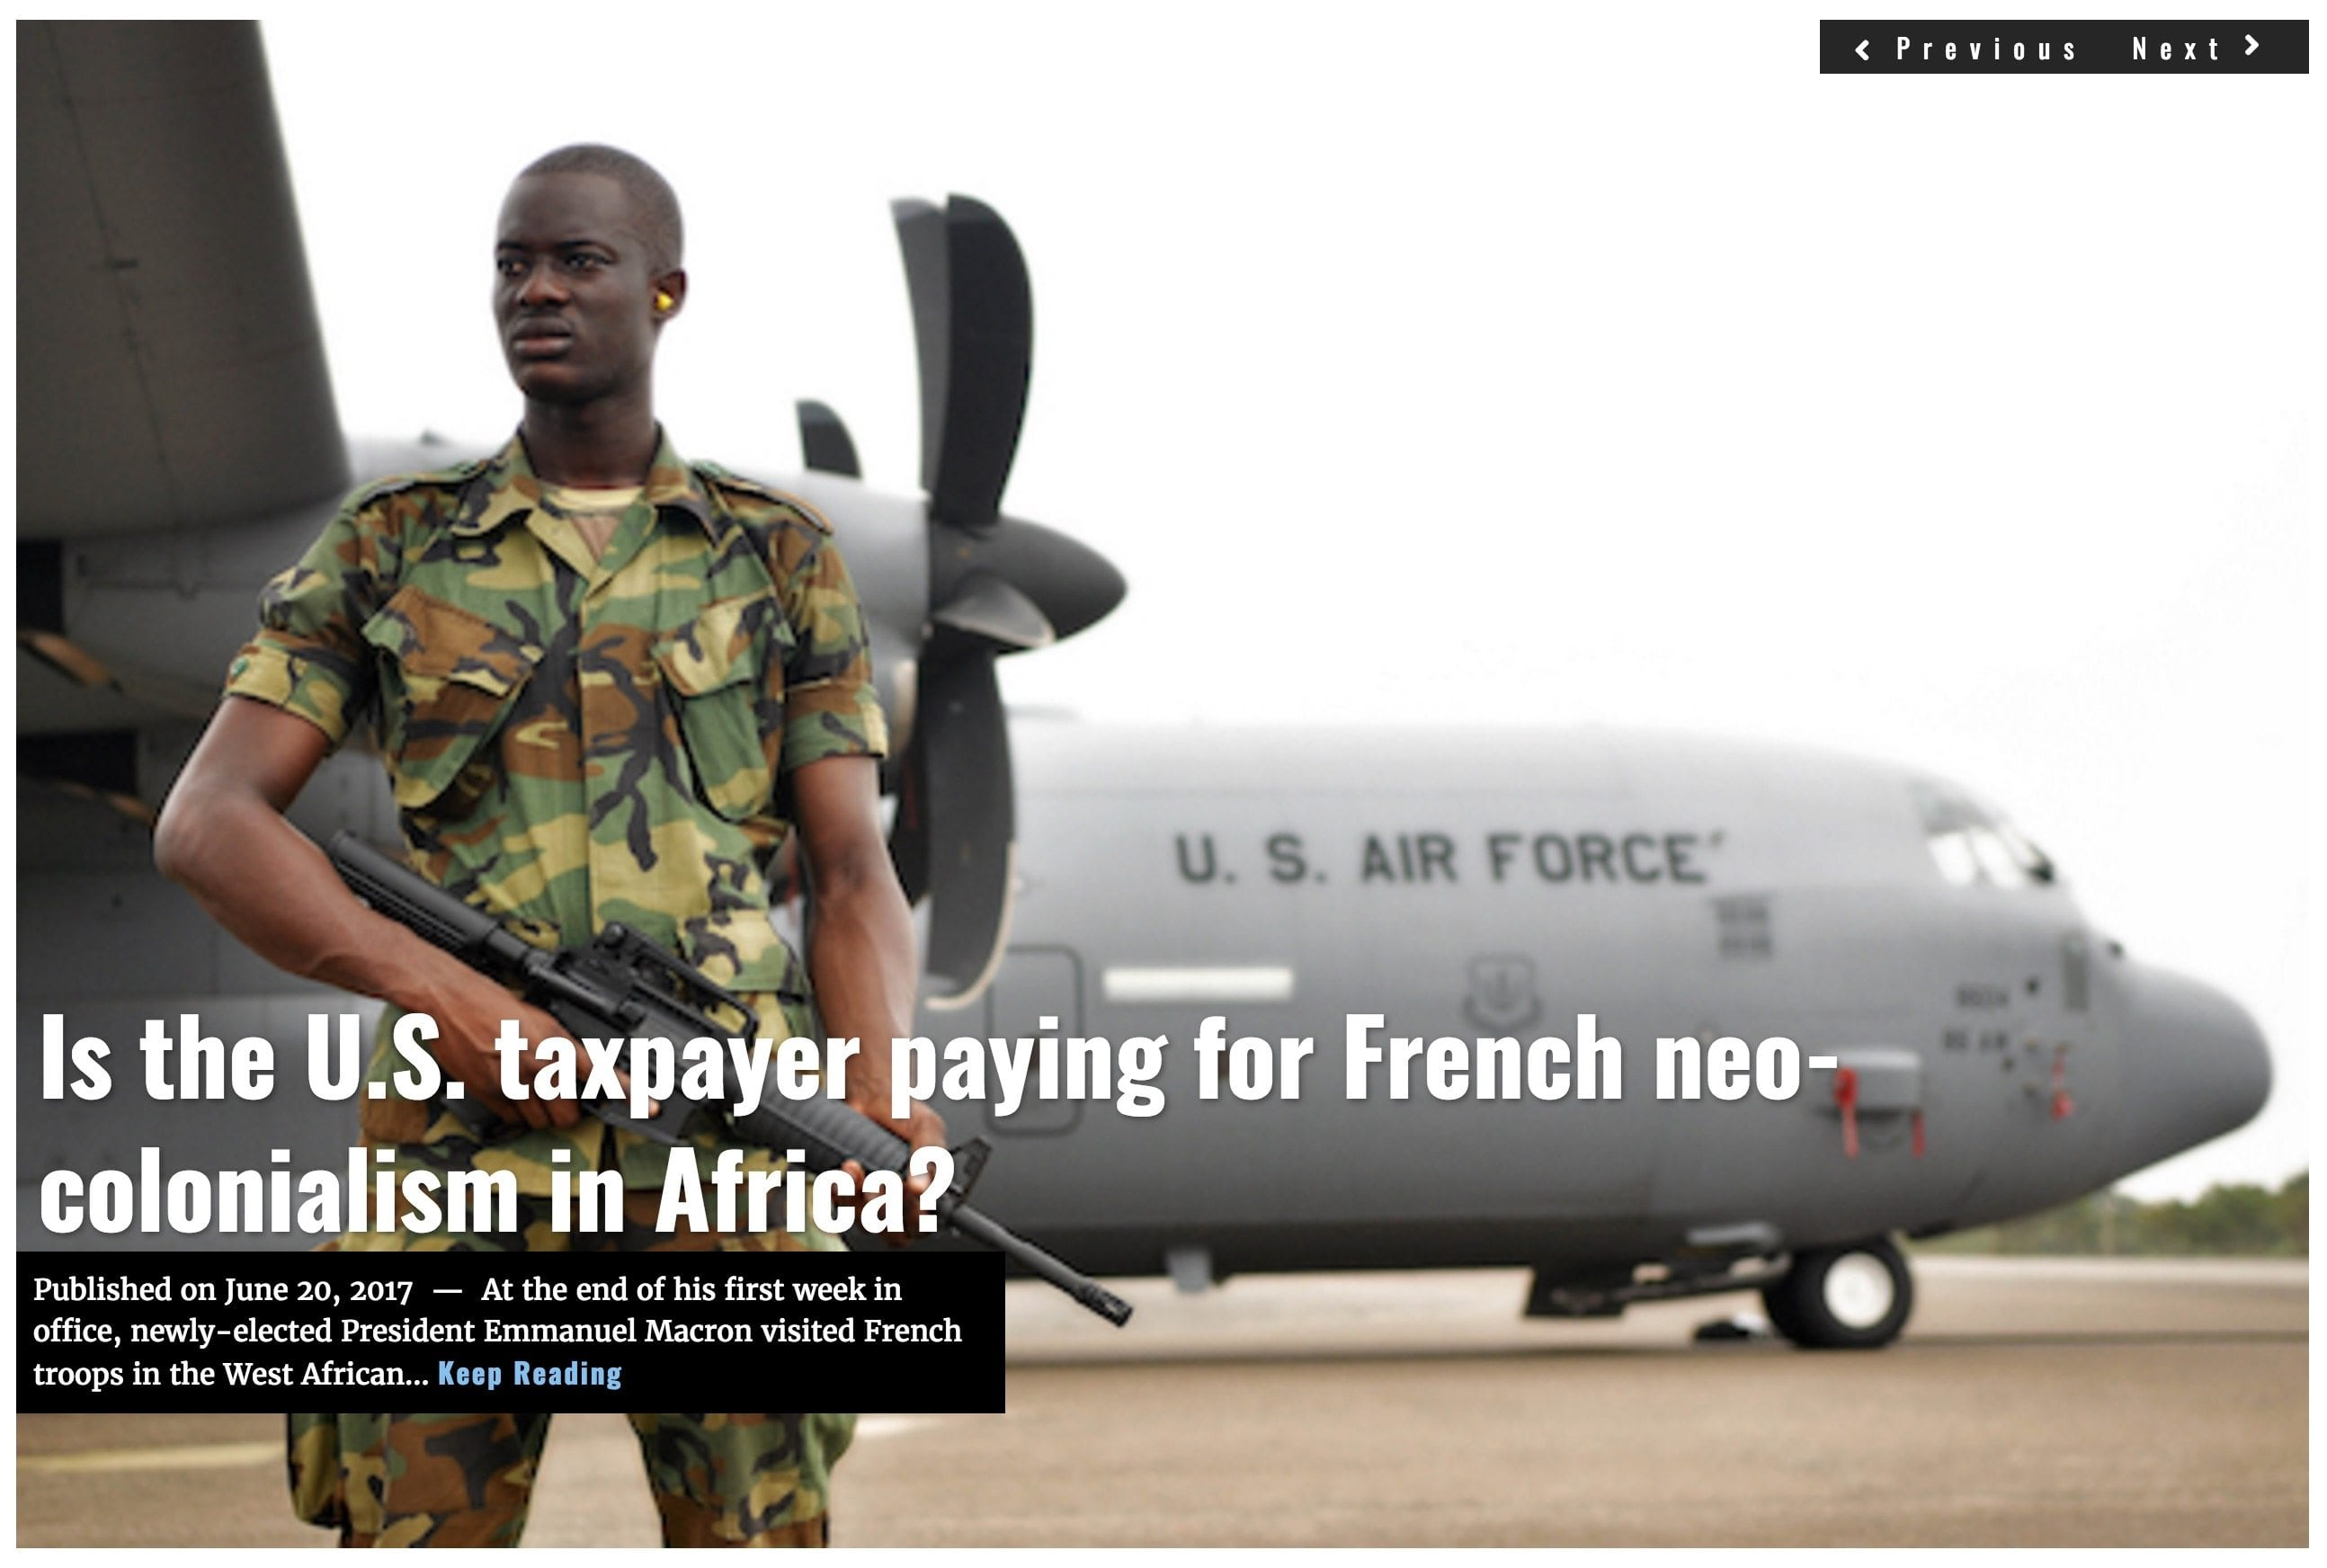 Image Lima Charlie News Headline US taxpayer neo-colonialism France Africa-G.Busch-JUN20 Sahel